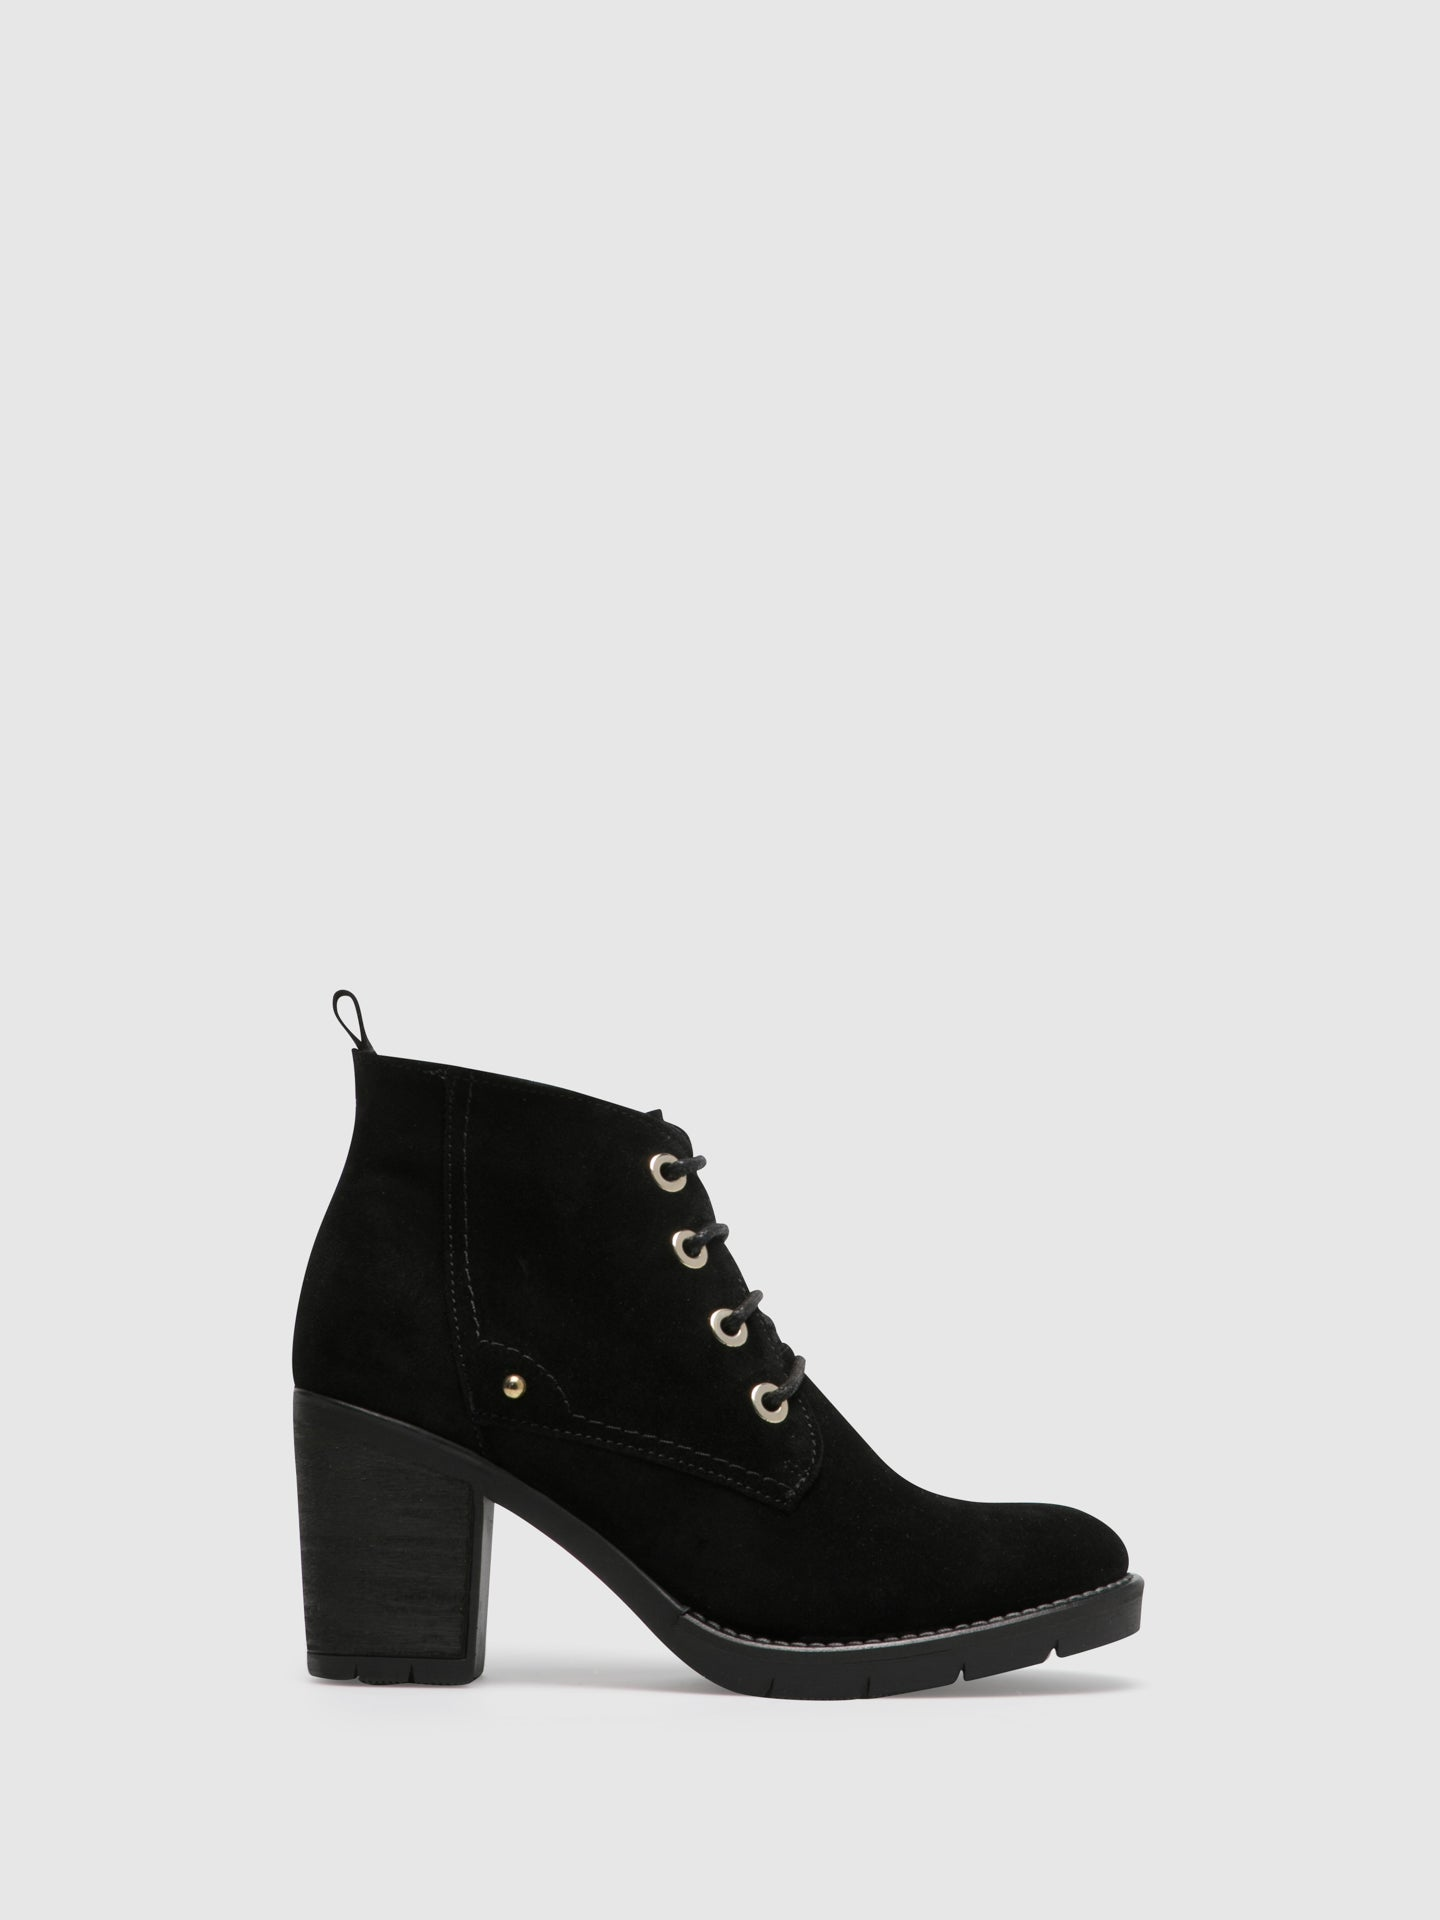 Foreva Black Lace-up Ankle Boots